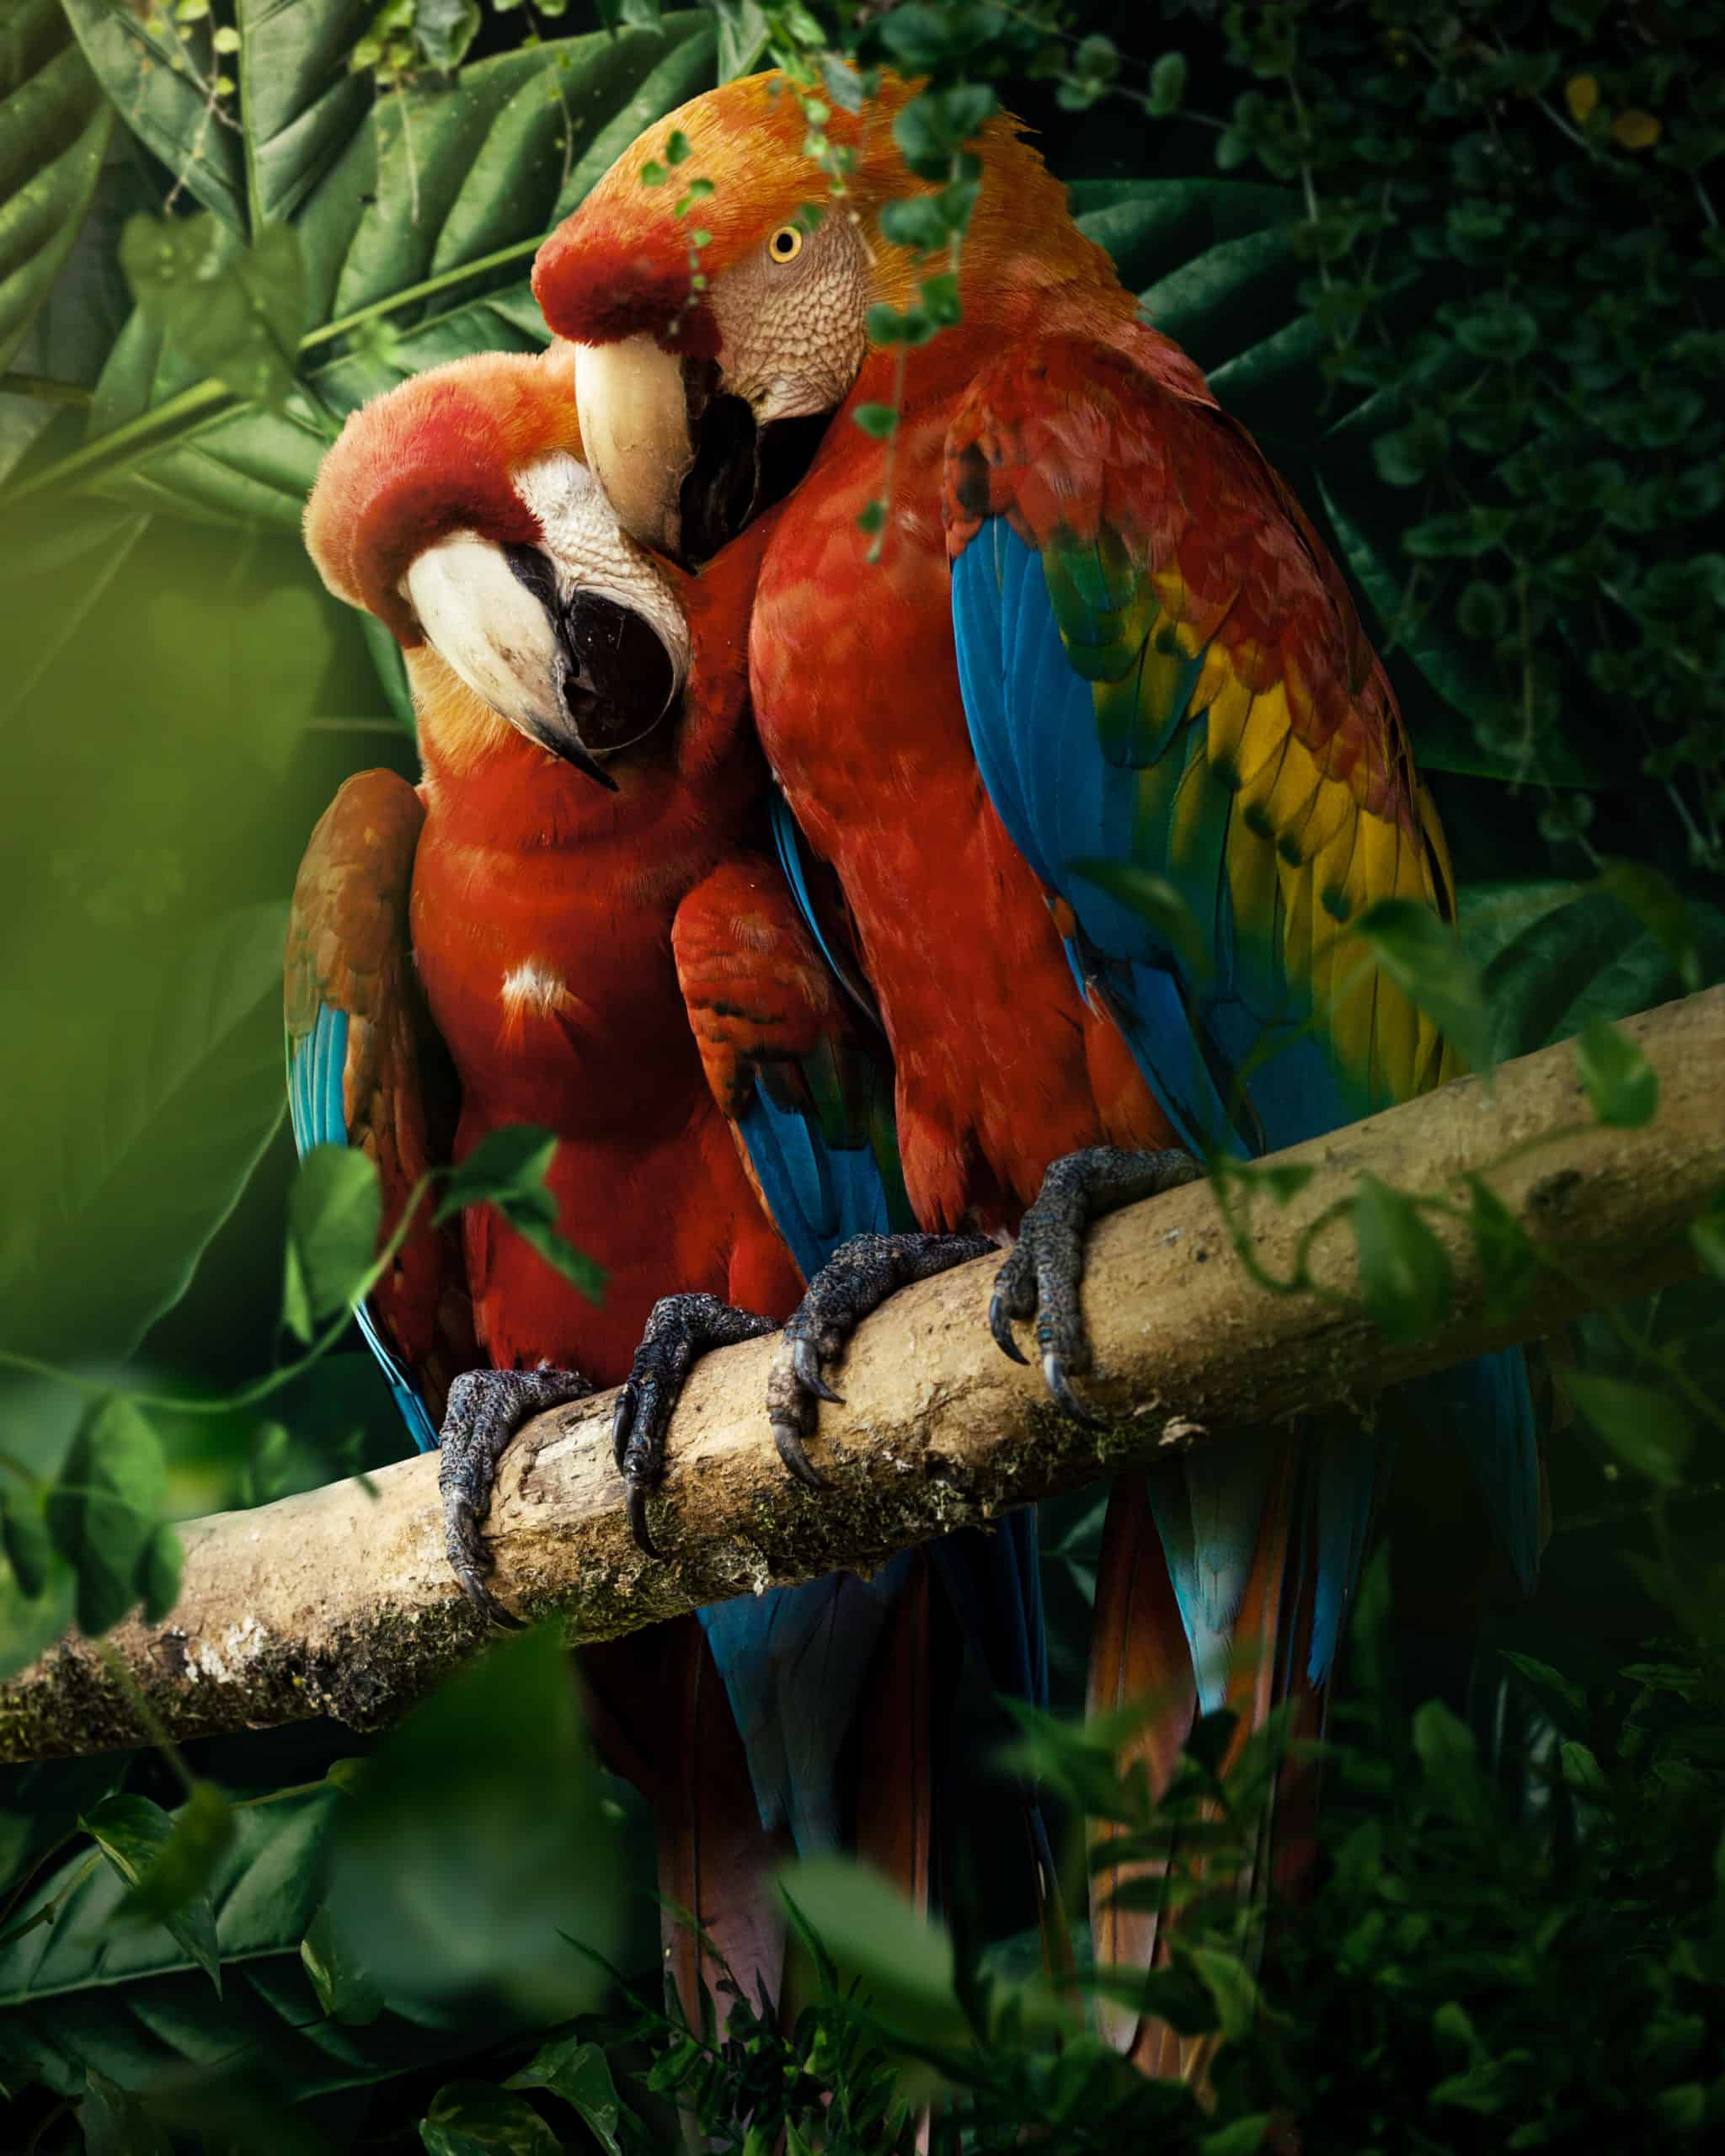 Create a nature scene of Parrots Photo Manipulation Tutorial